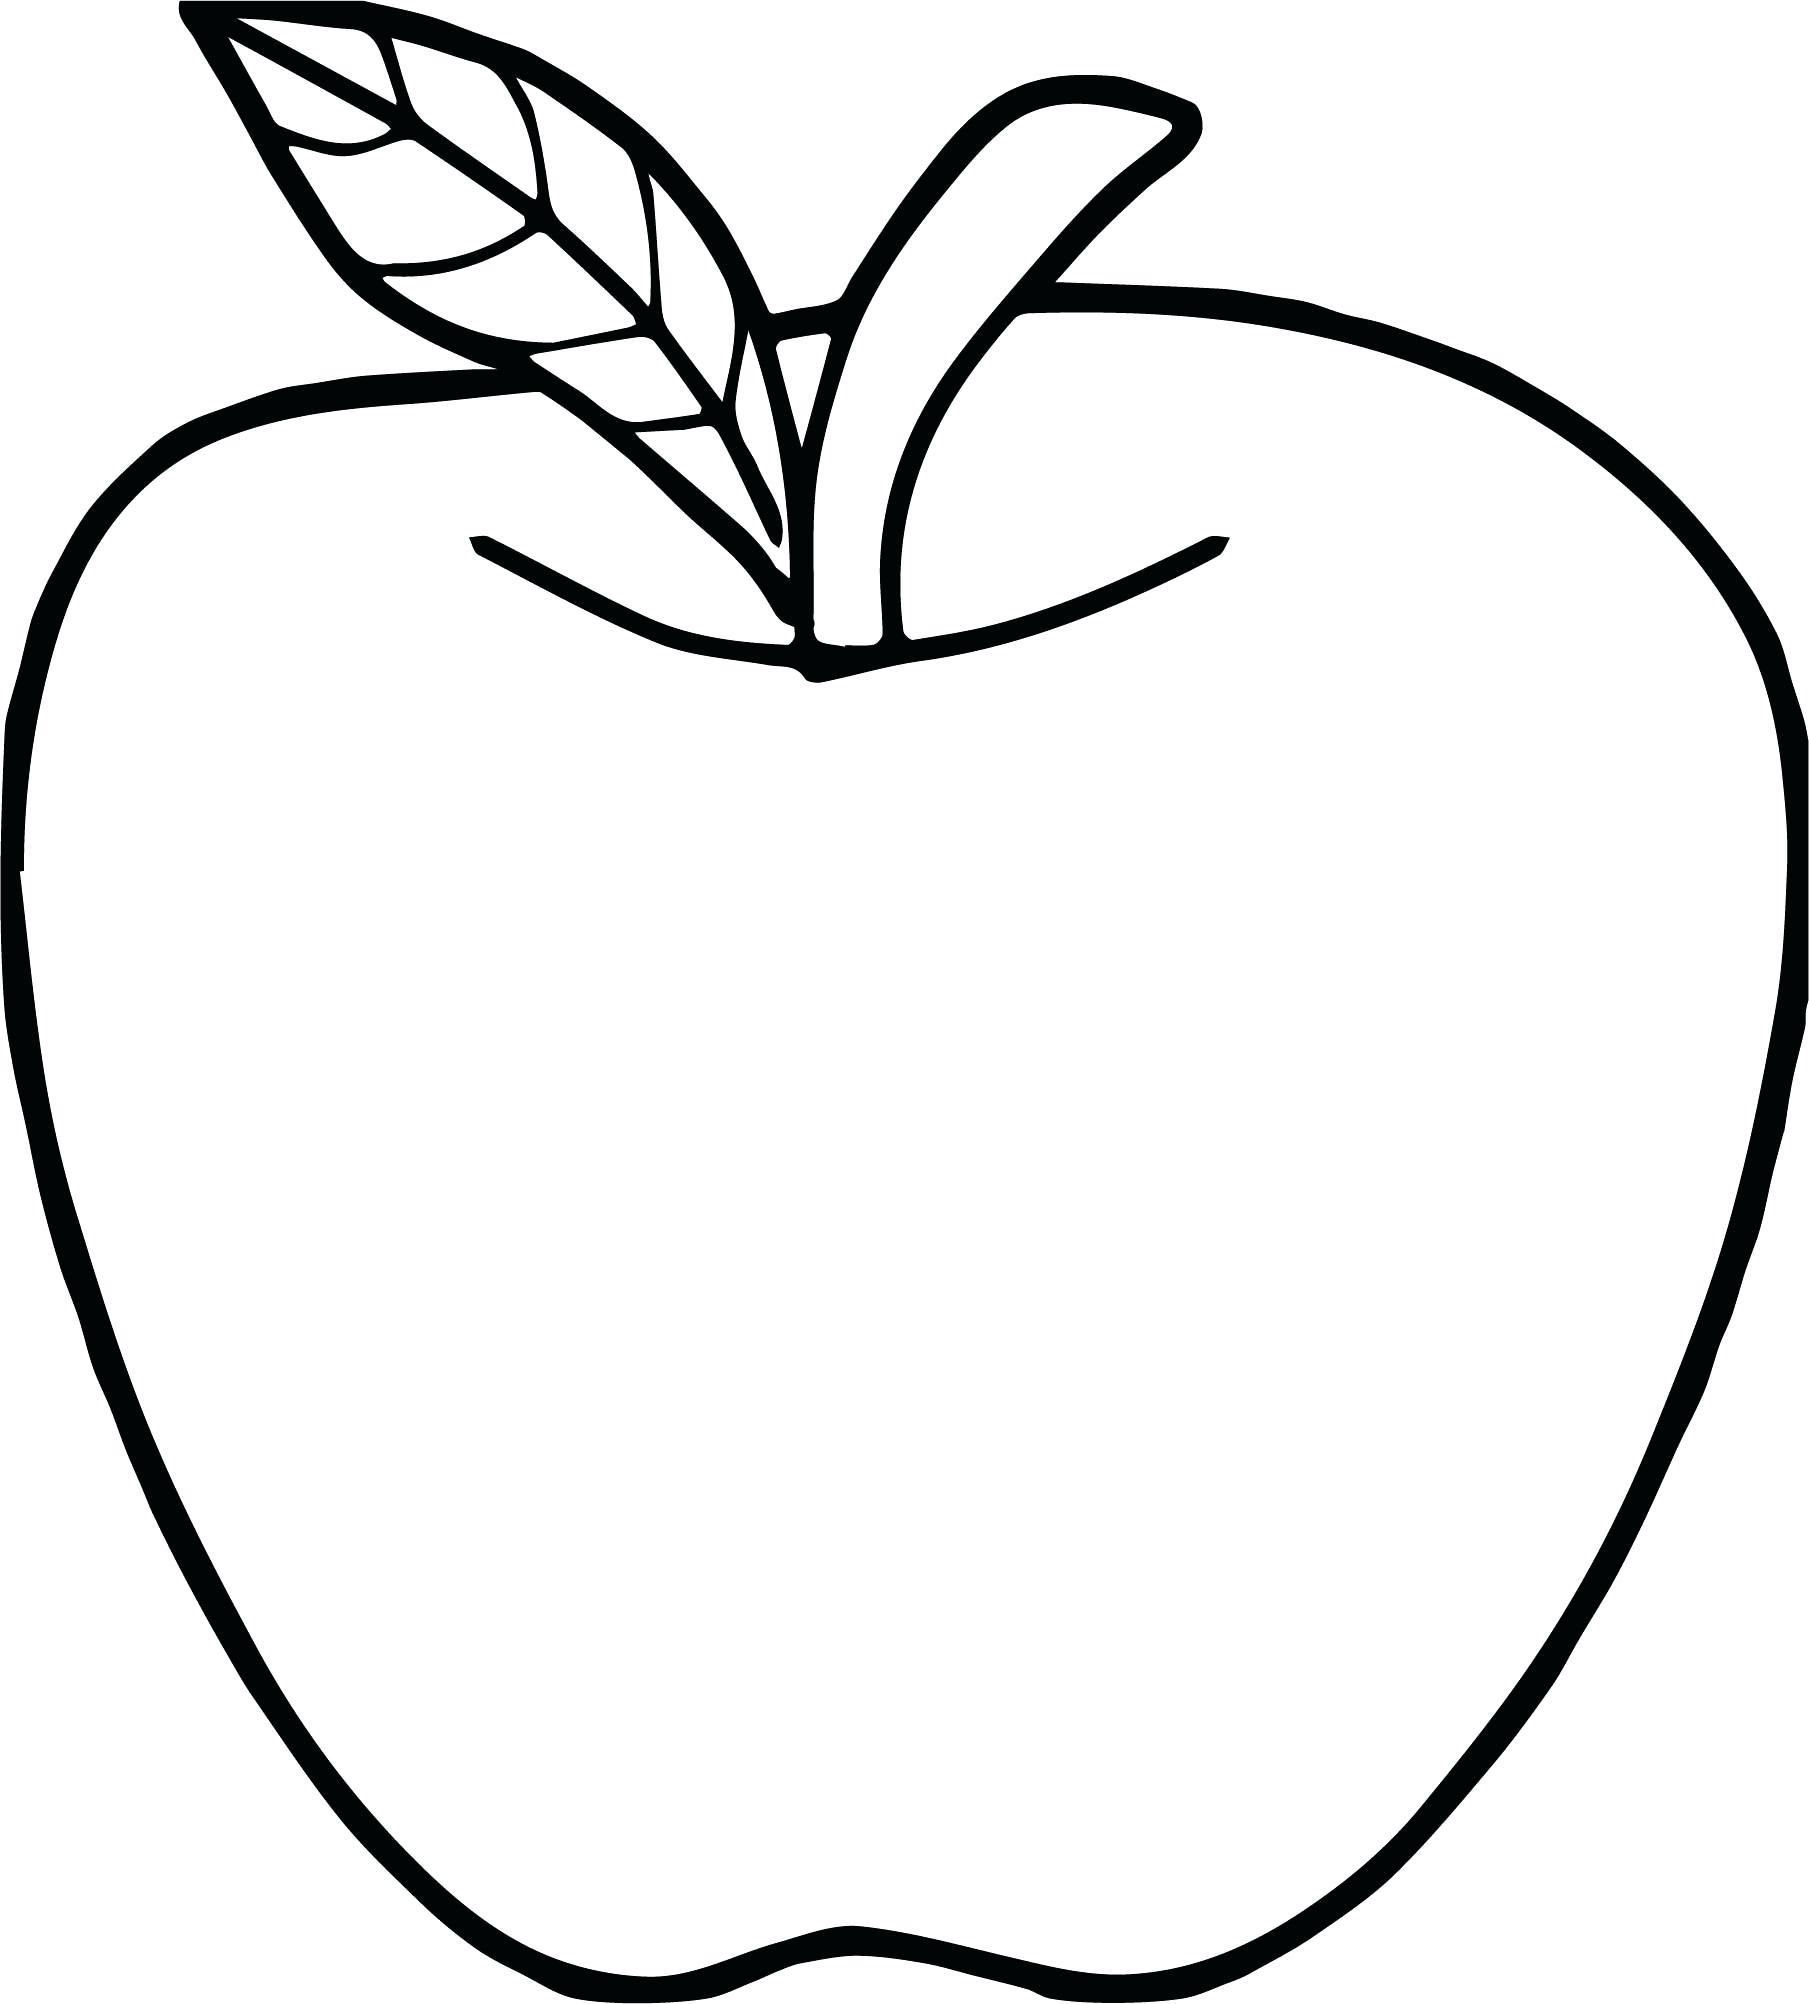 Coloring Page Apples Apple Coloring Pages Apple Coloring Page Printable Coloring Pages